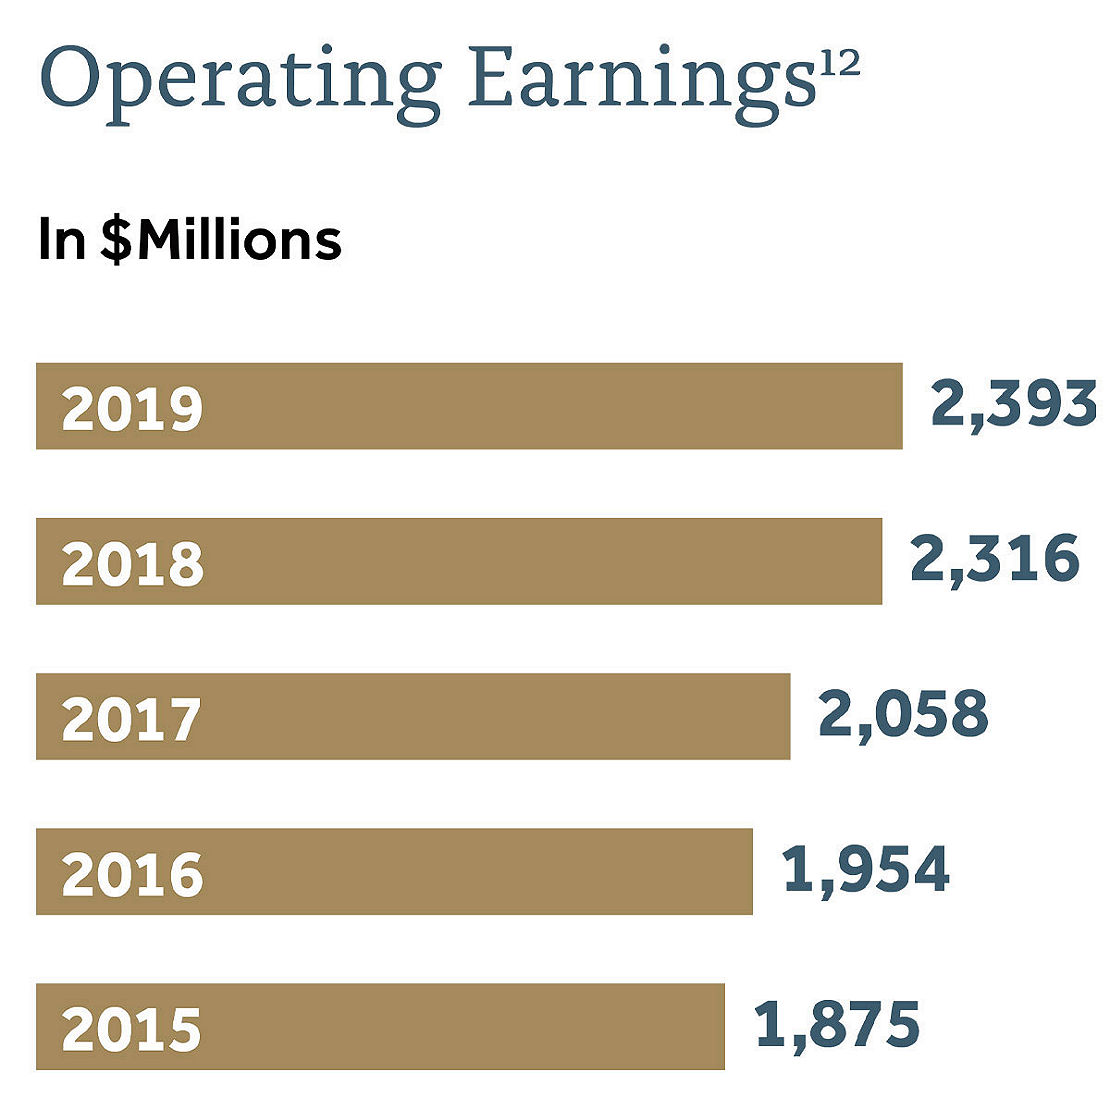 Operating Earnings